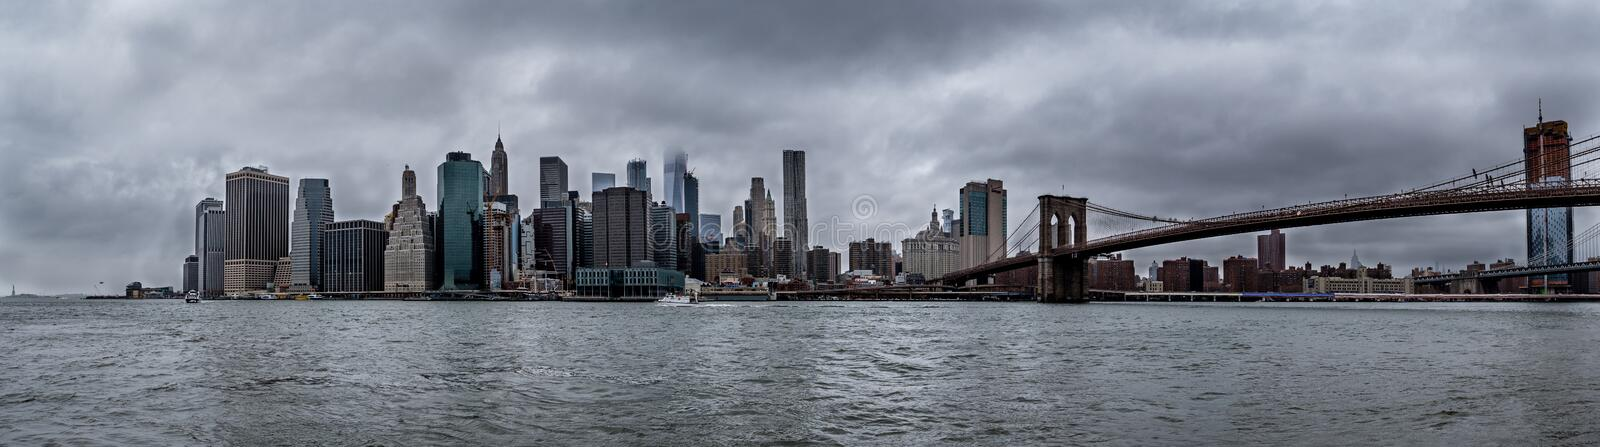 New York City downtown skyline during cloudy rainy day, skyscrapper covered in clouds. USA stock photos